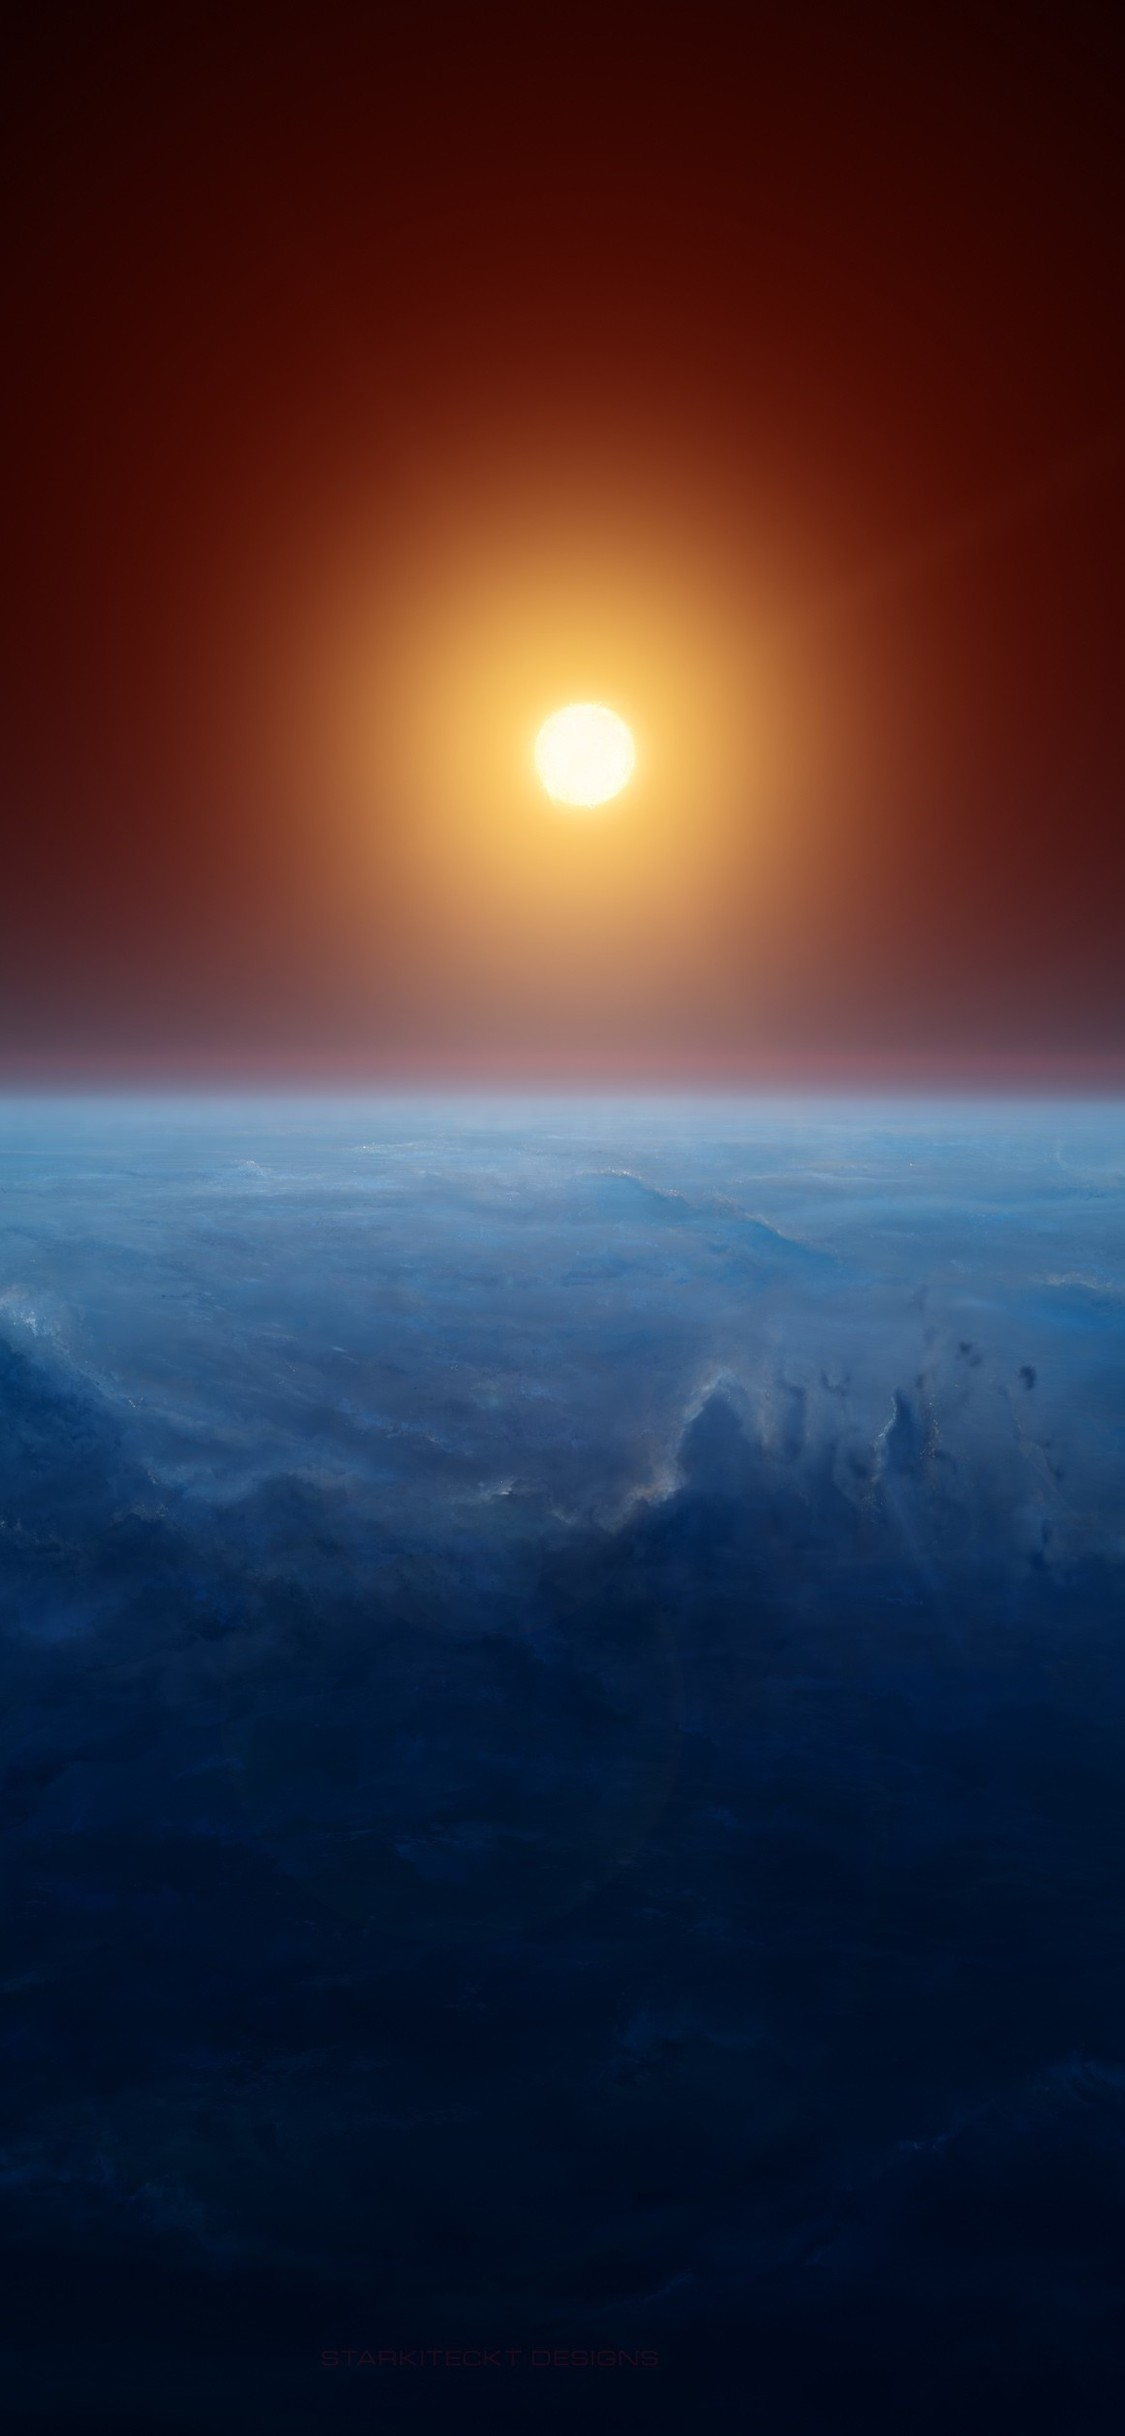 Earth Space Sunset 4k Iphone Xs Iphone 10 Iphone X Sun 466050 Hd Wallpaper Backgrounds Download